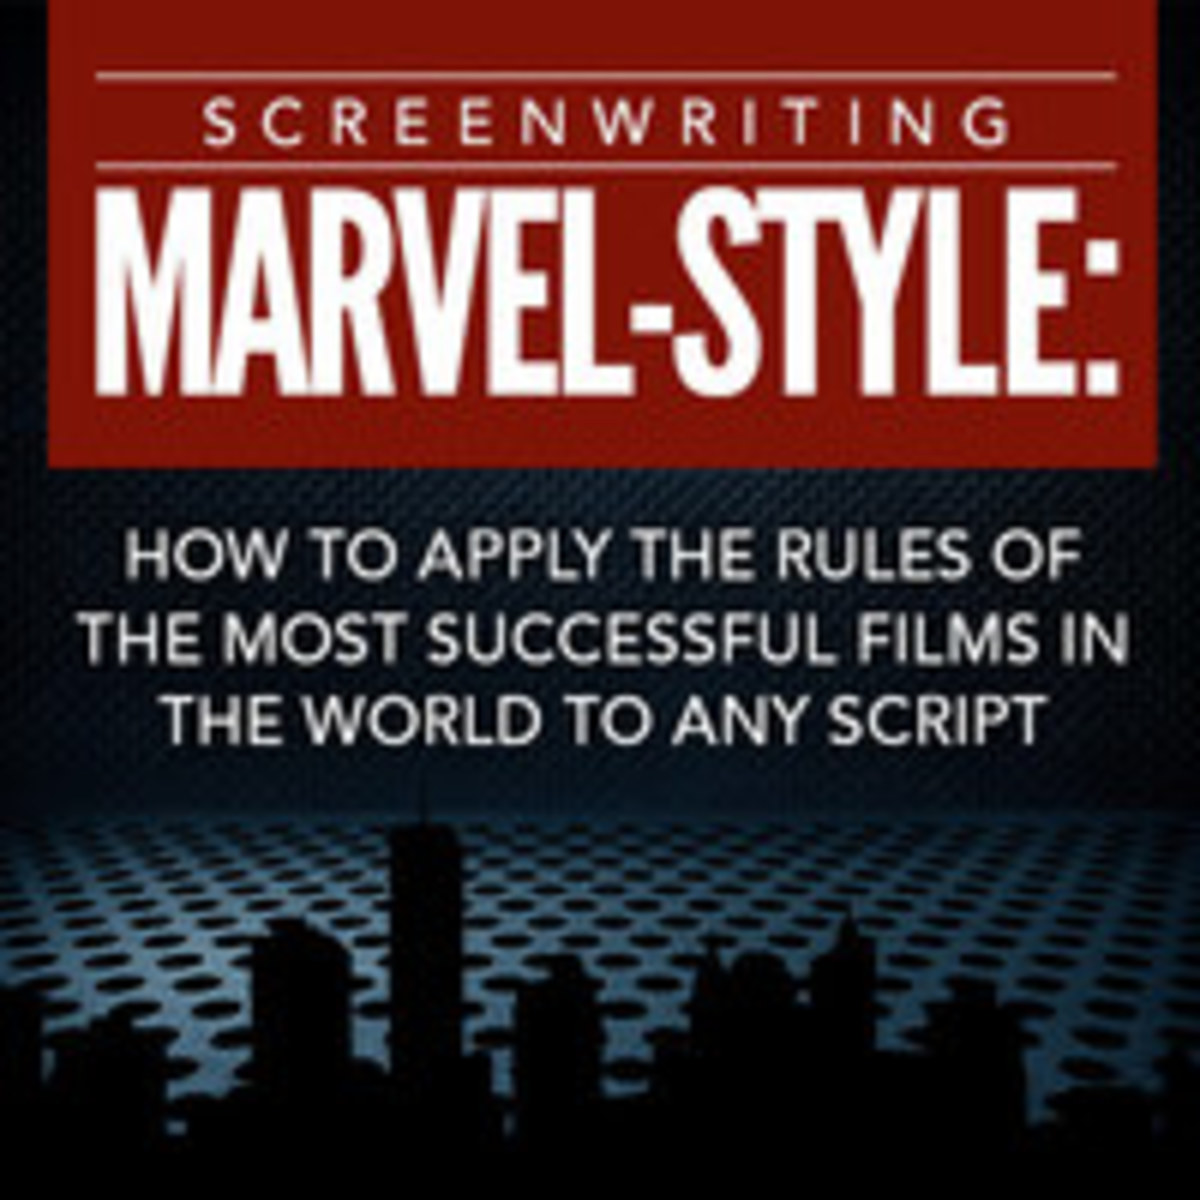 Screenwriting Marvel-Style How to Apply the Rules of the Most Successful Films in the World to Any Script